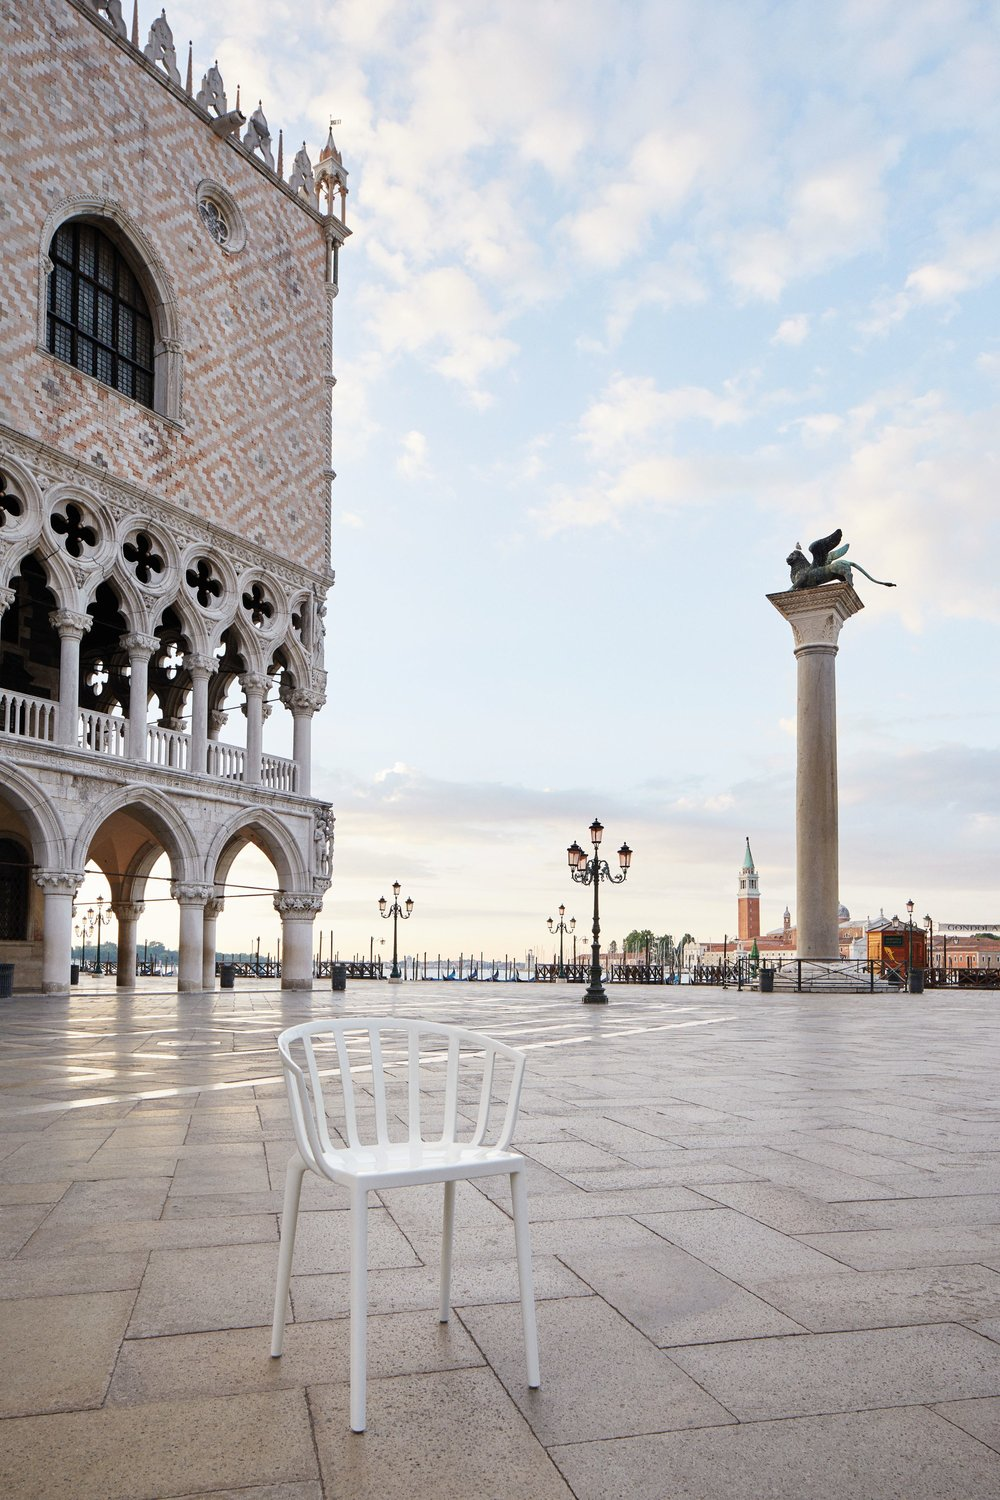 Venice's iconic St Mark's Square at dusk when the crowds have drifted off for dinner.